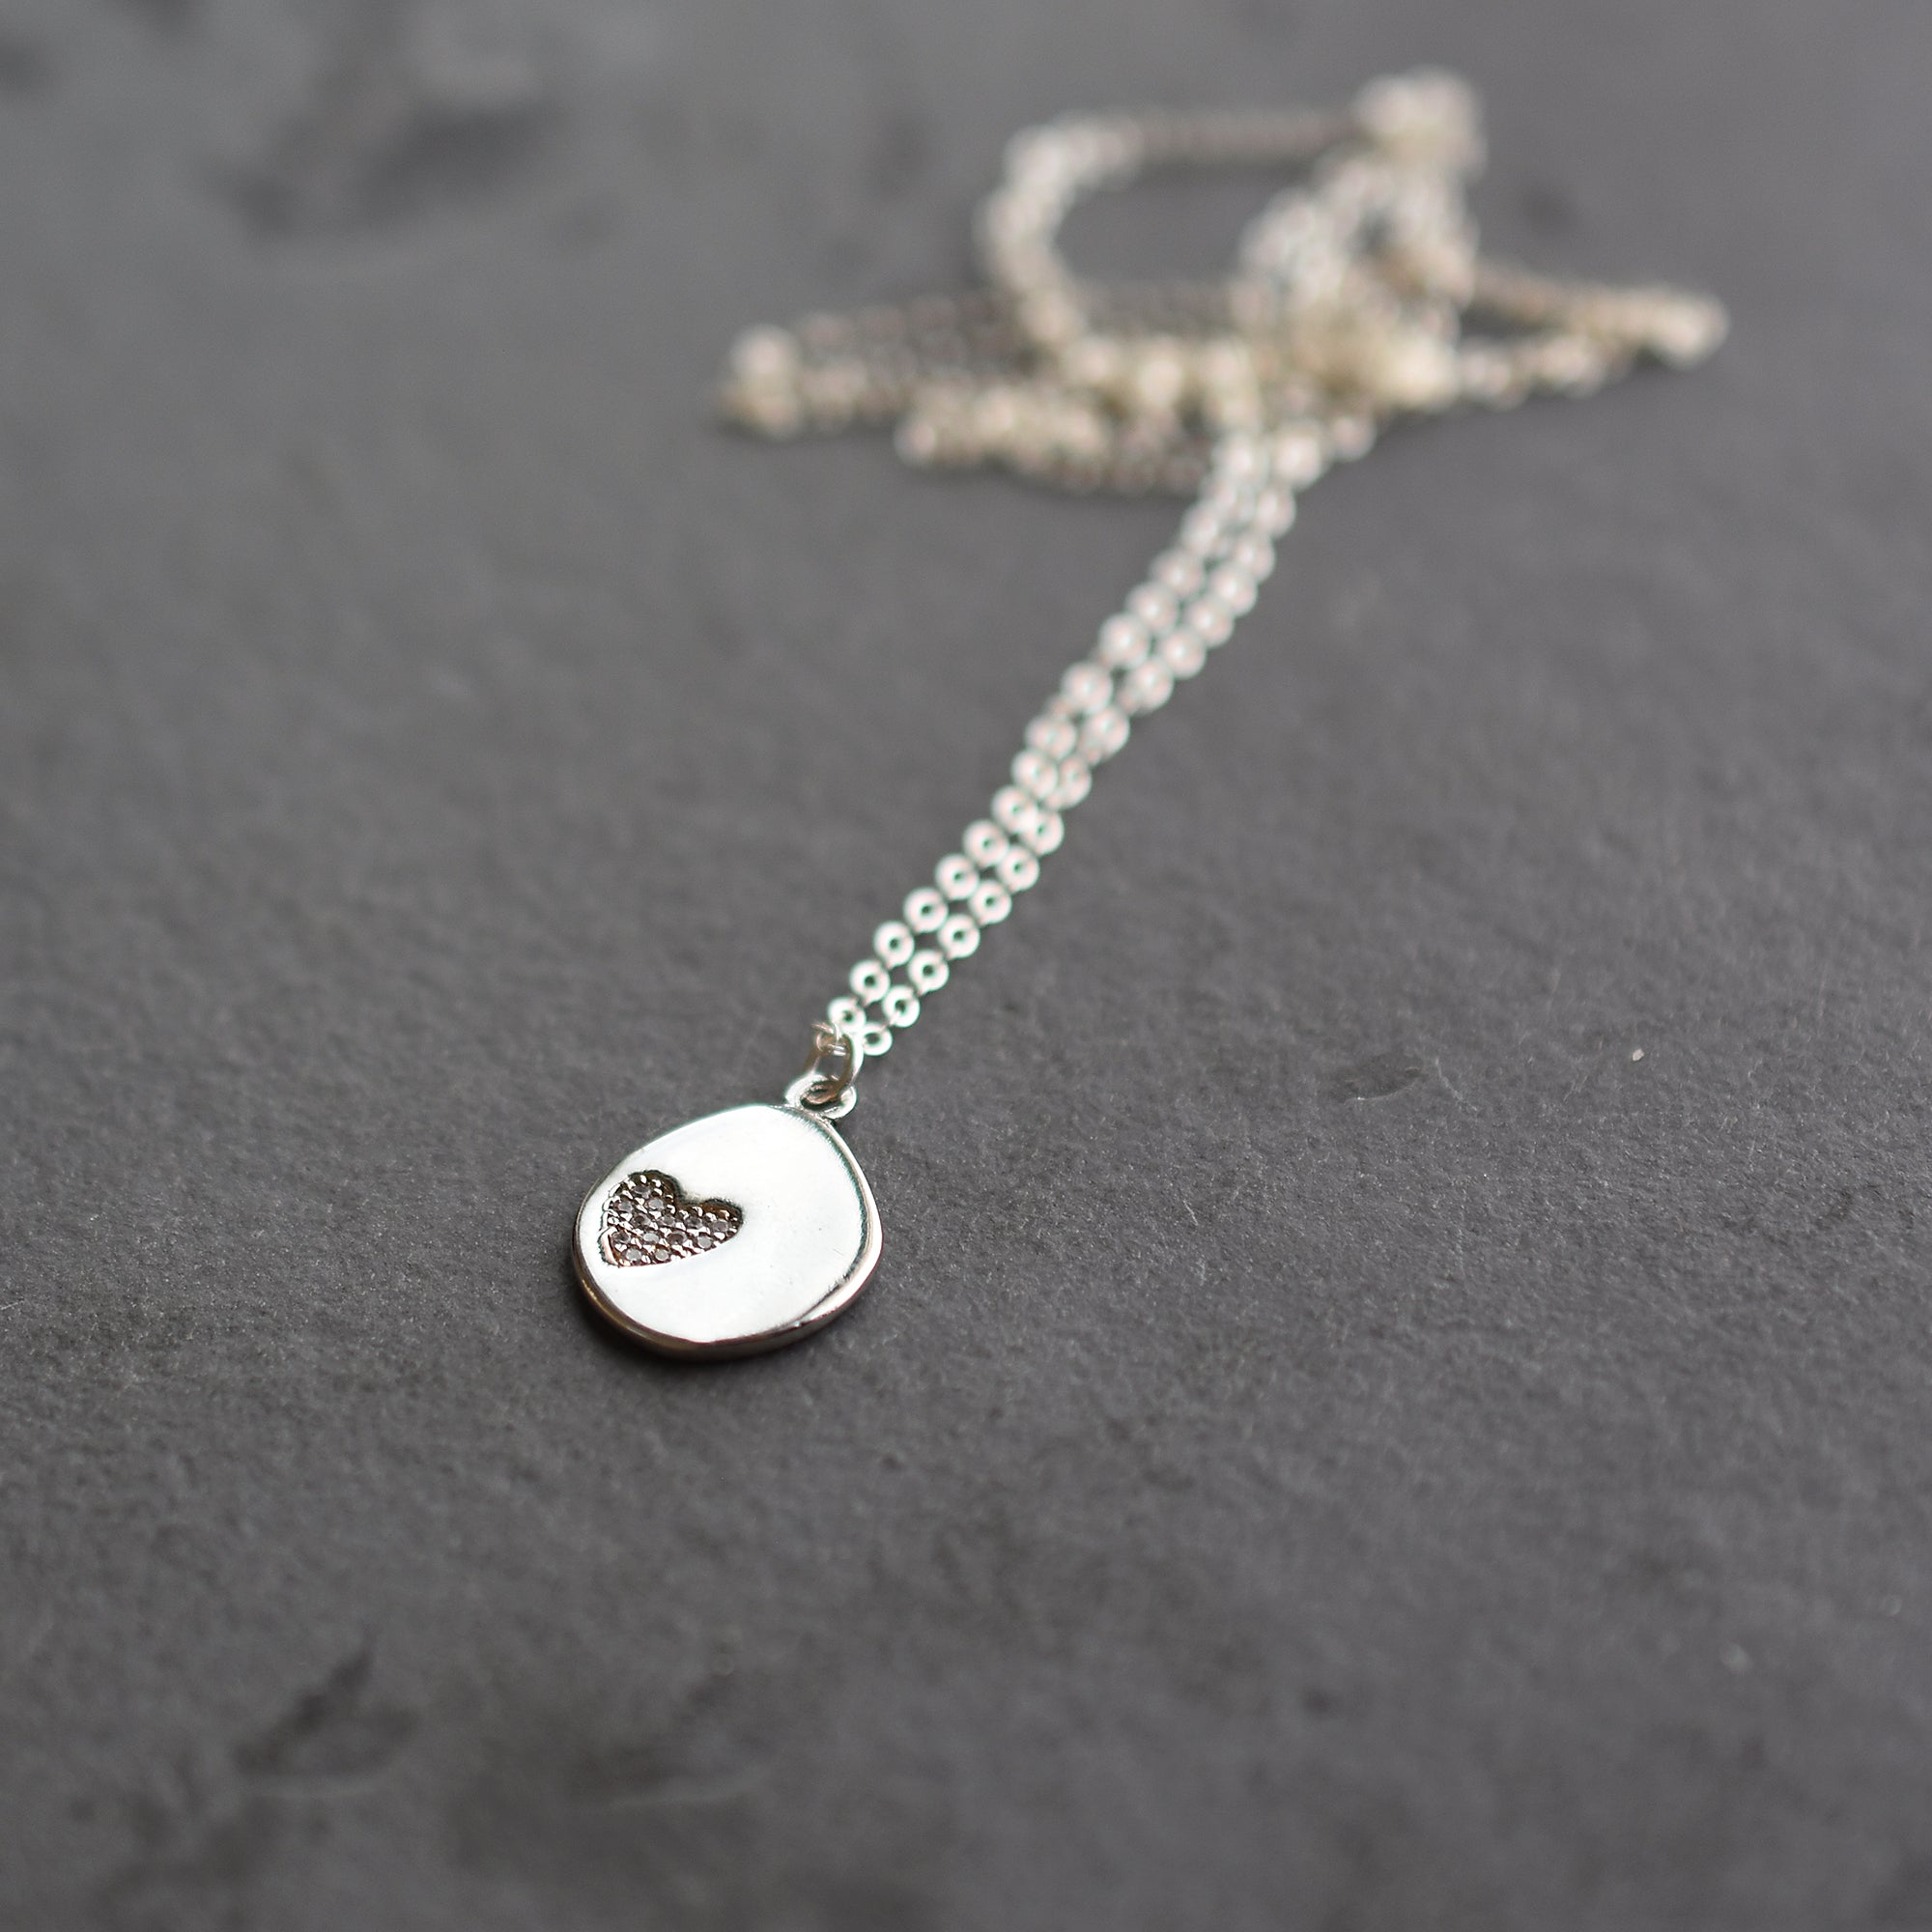 Silver Sparkly Heart Necklace